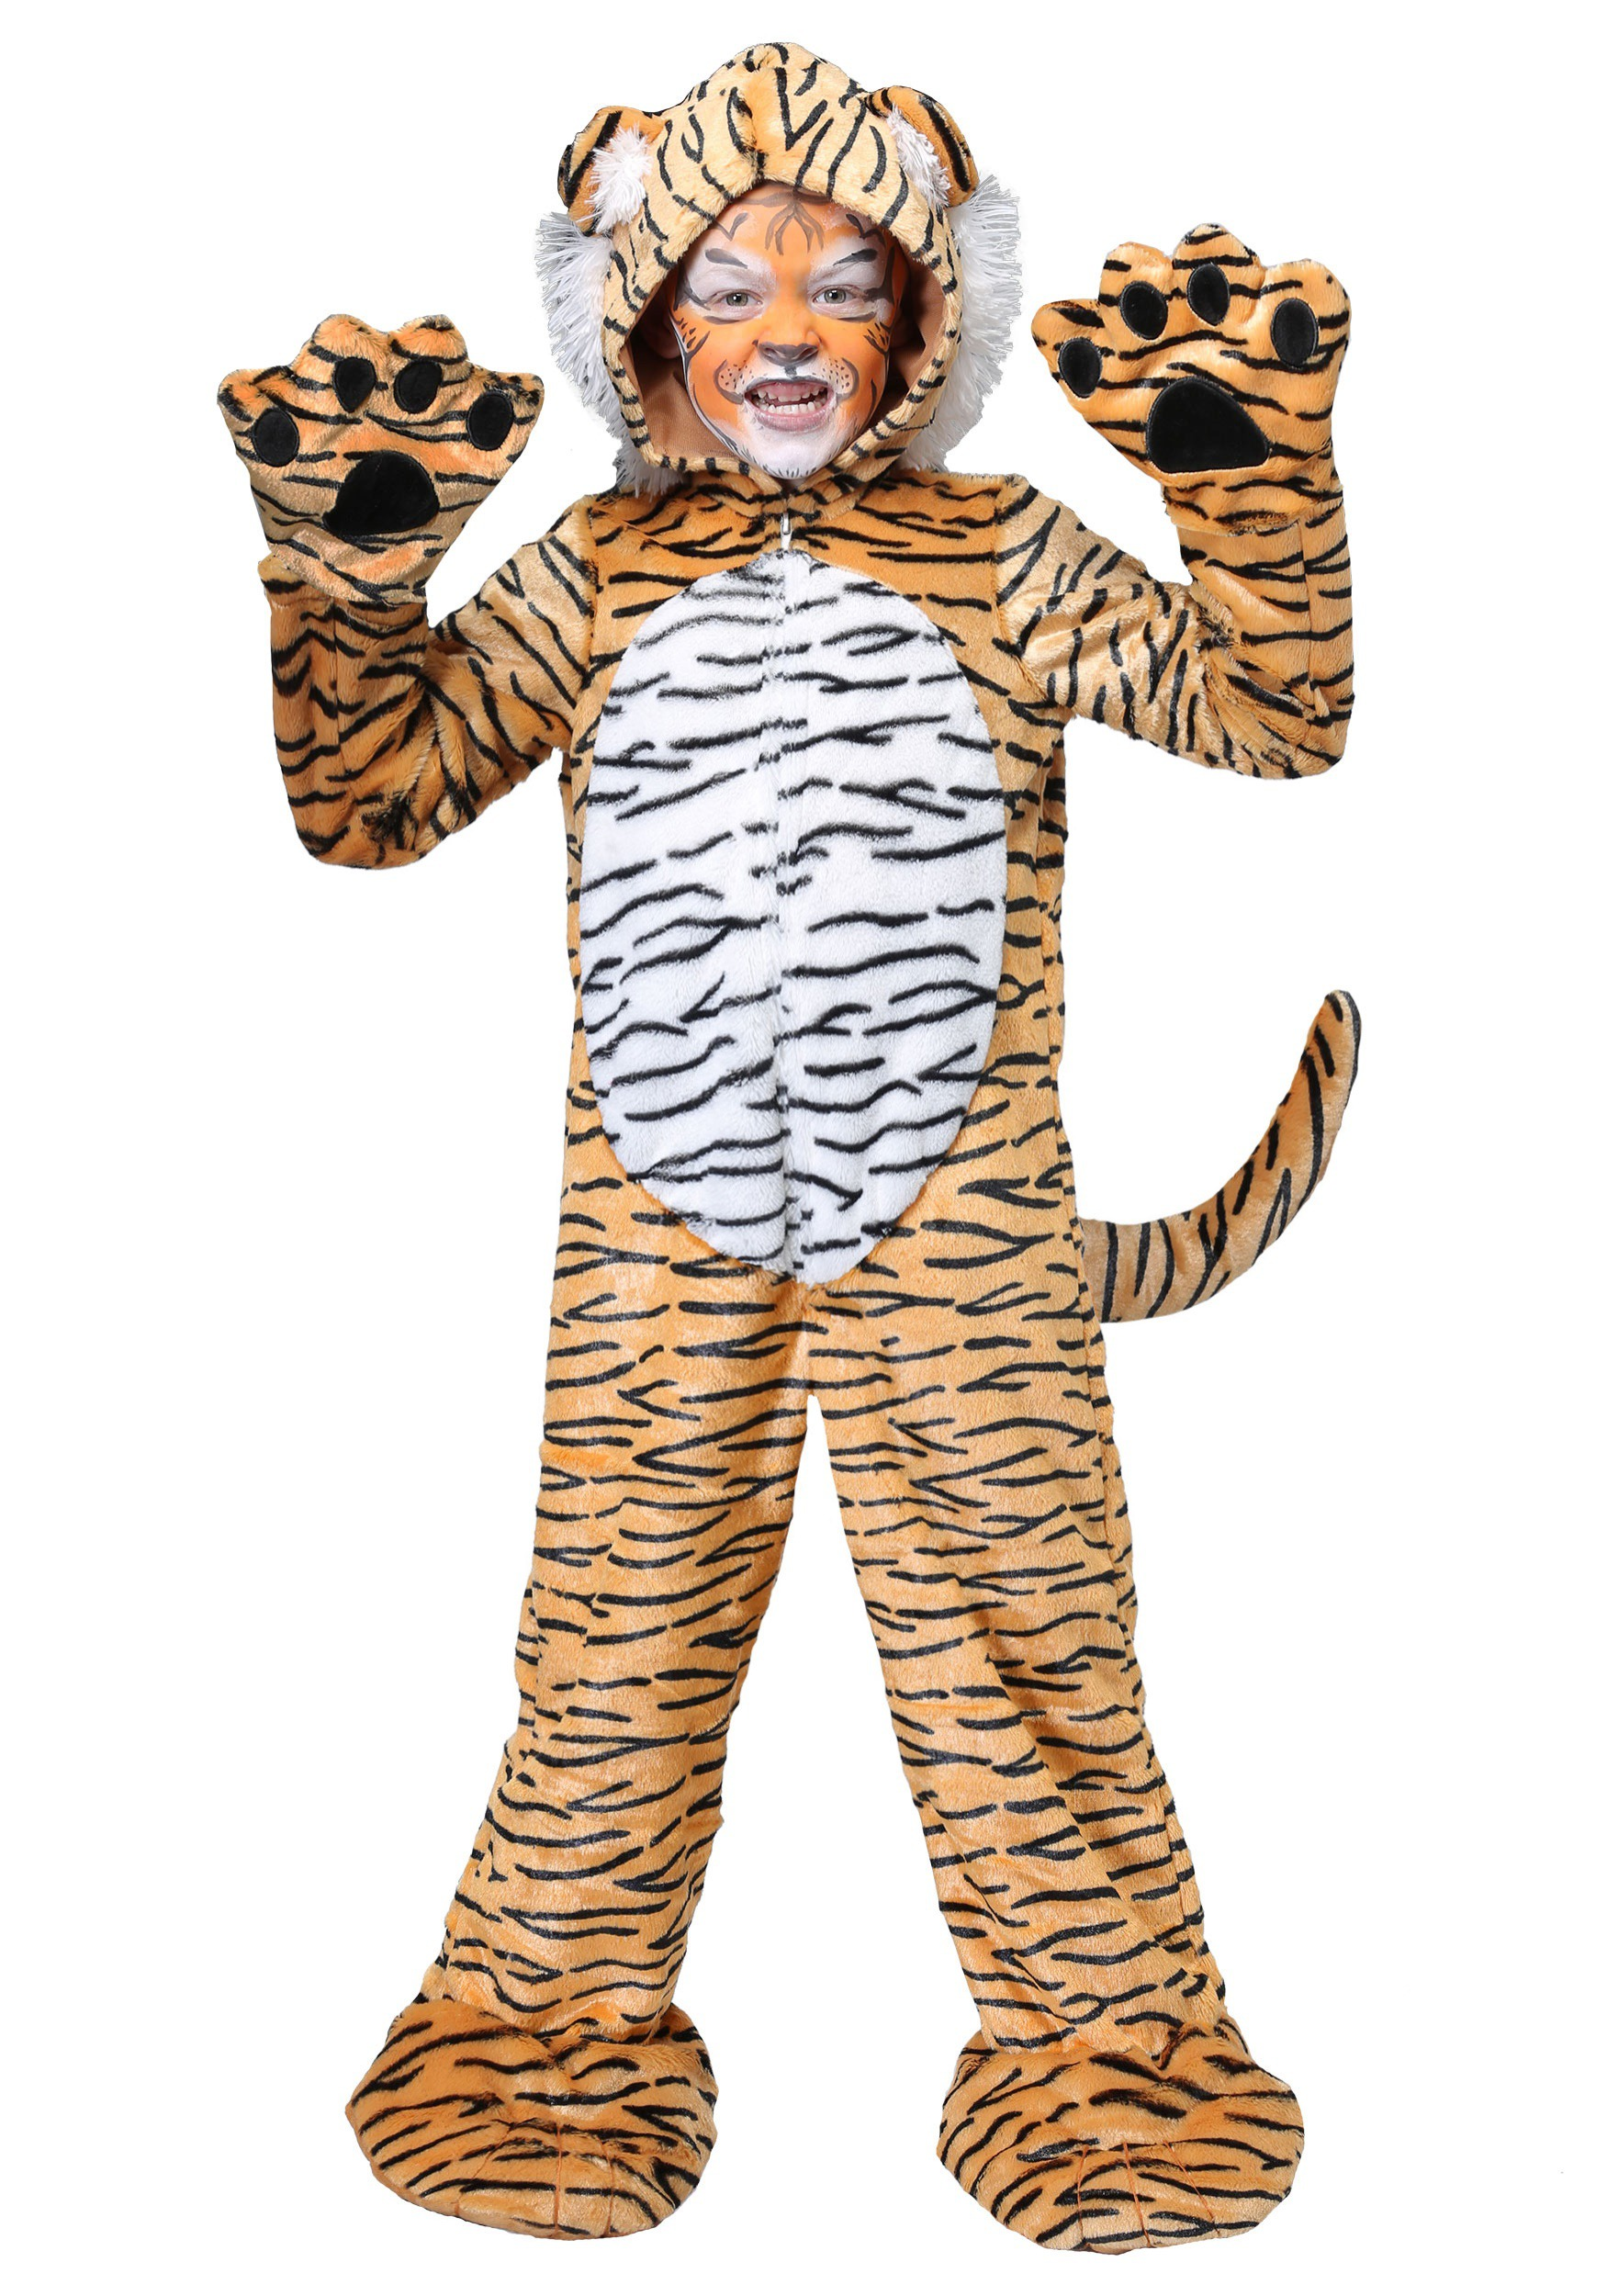 Premium Tiger Child Costume  sc 1 st  Halloween Costumes & Tiger Costumes For Adults u0026 Kids - HalloweenCostumes.com